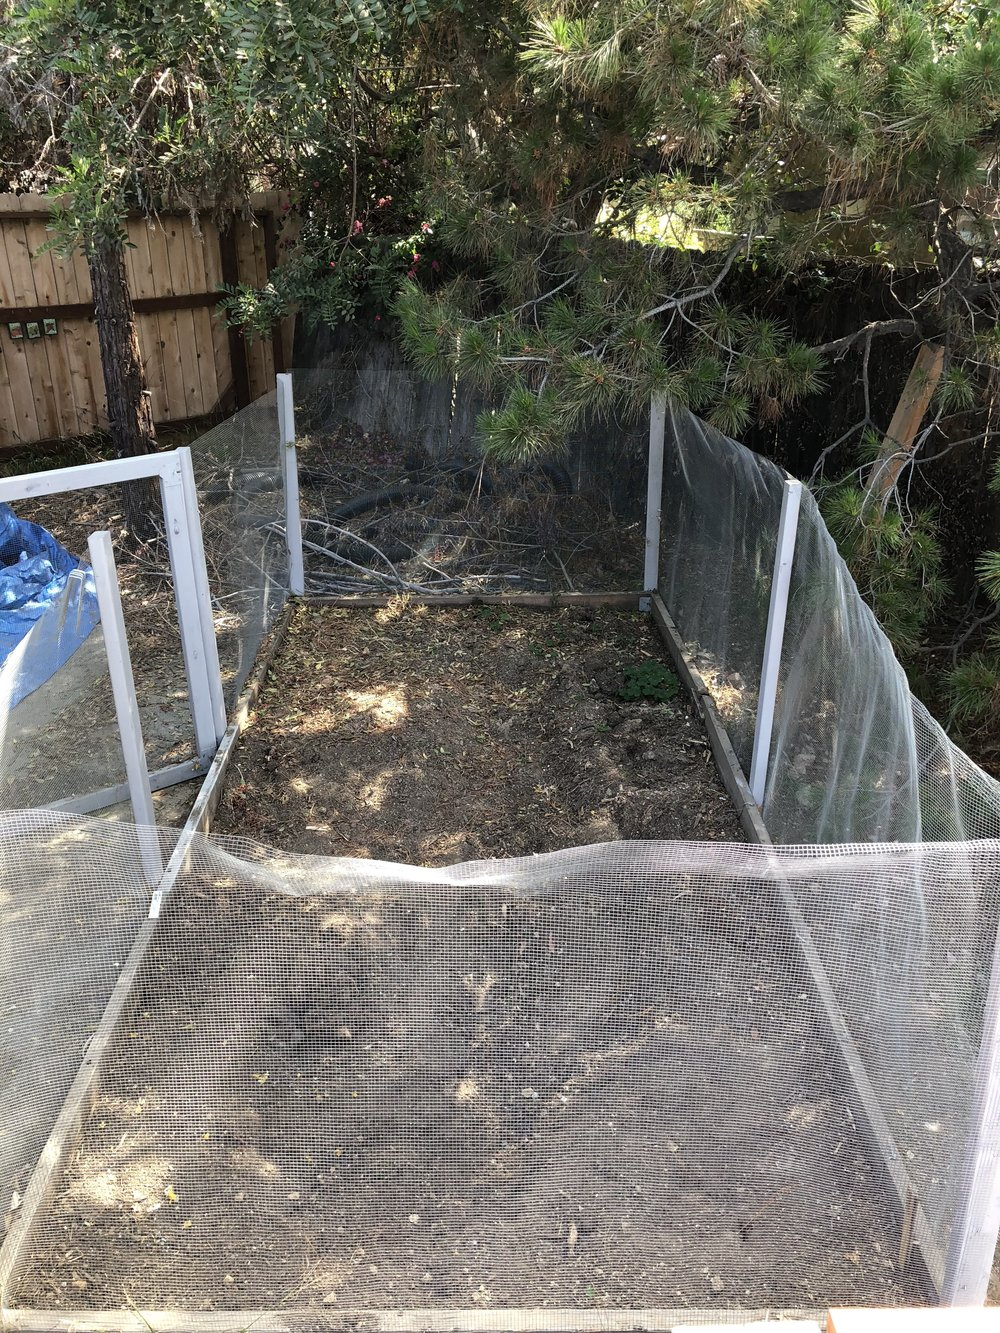 This fenced bed is destined for demolition and its soil will be transferred to containers. The plot will become a garden shed.